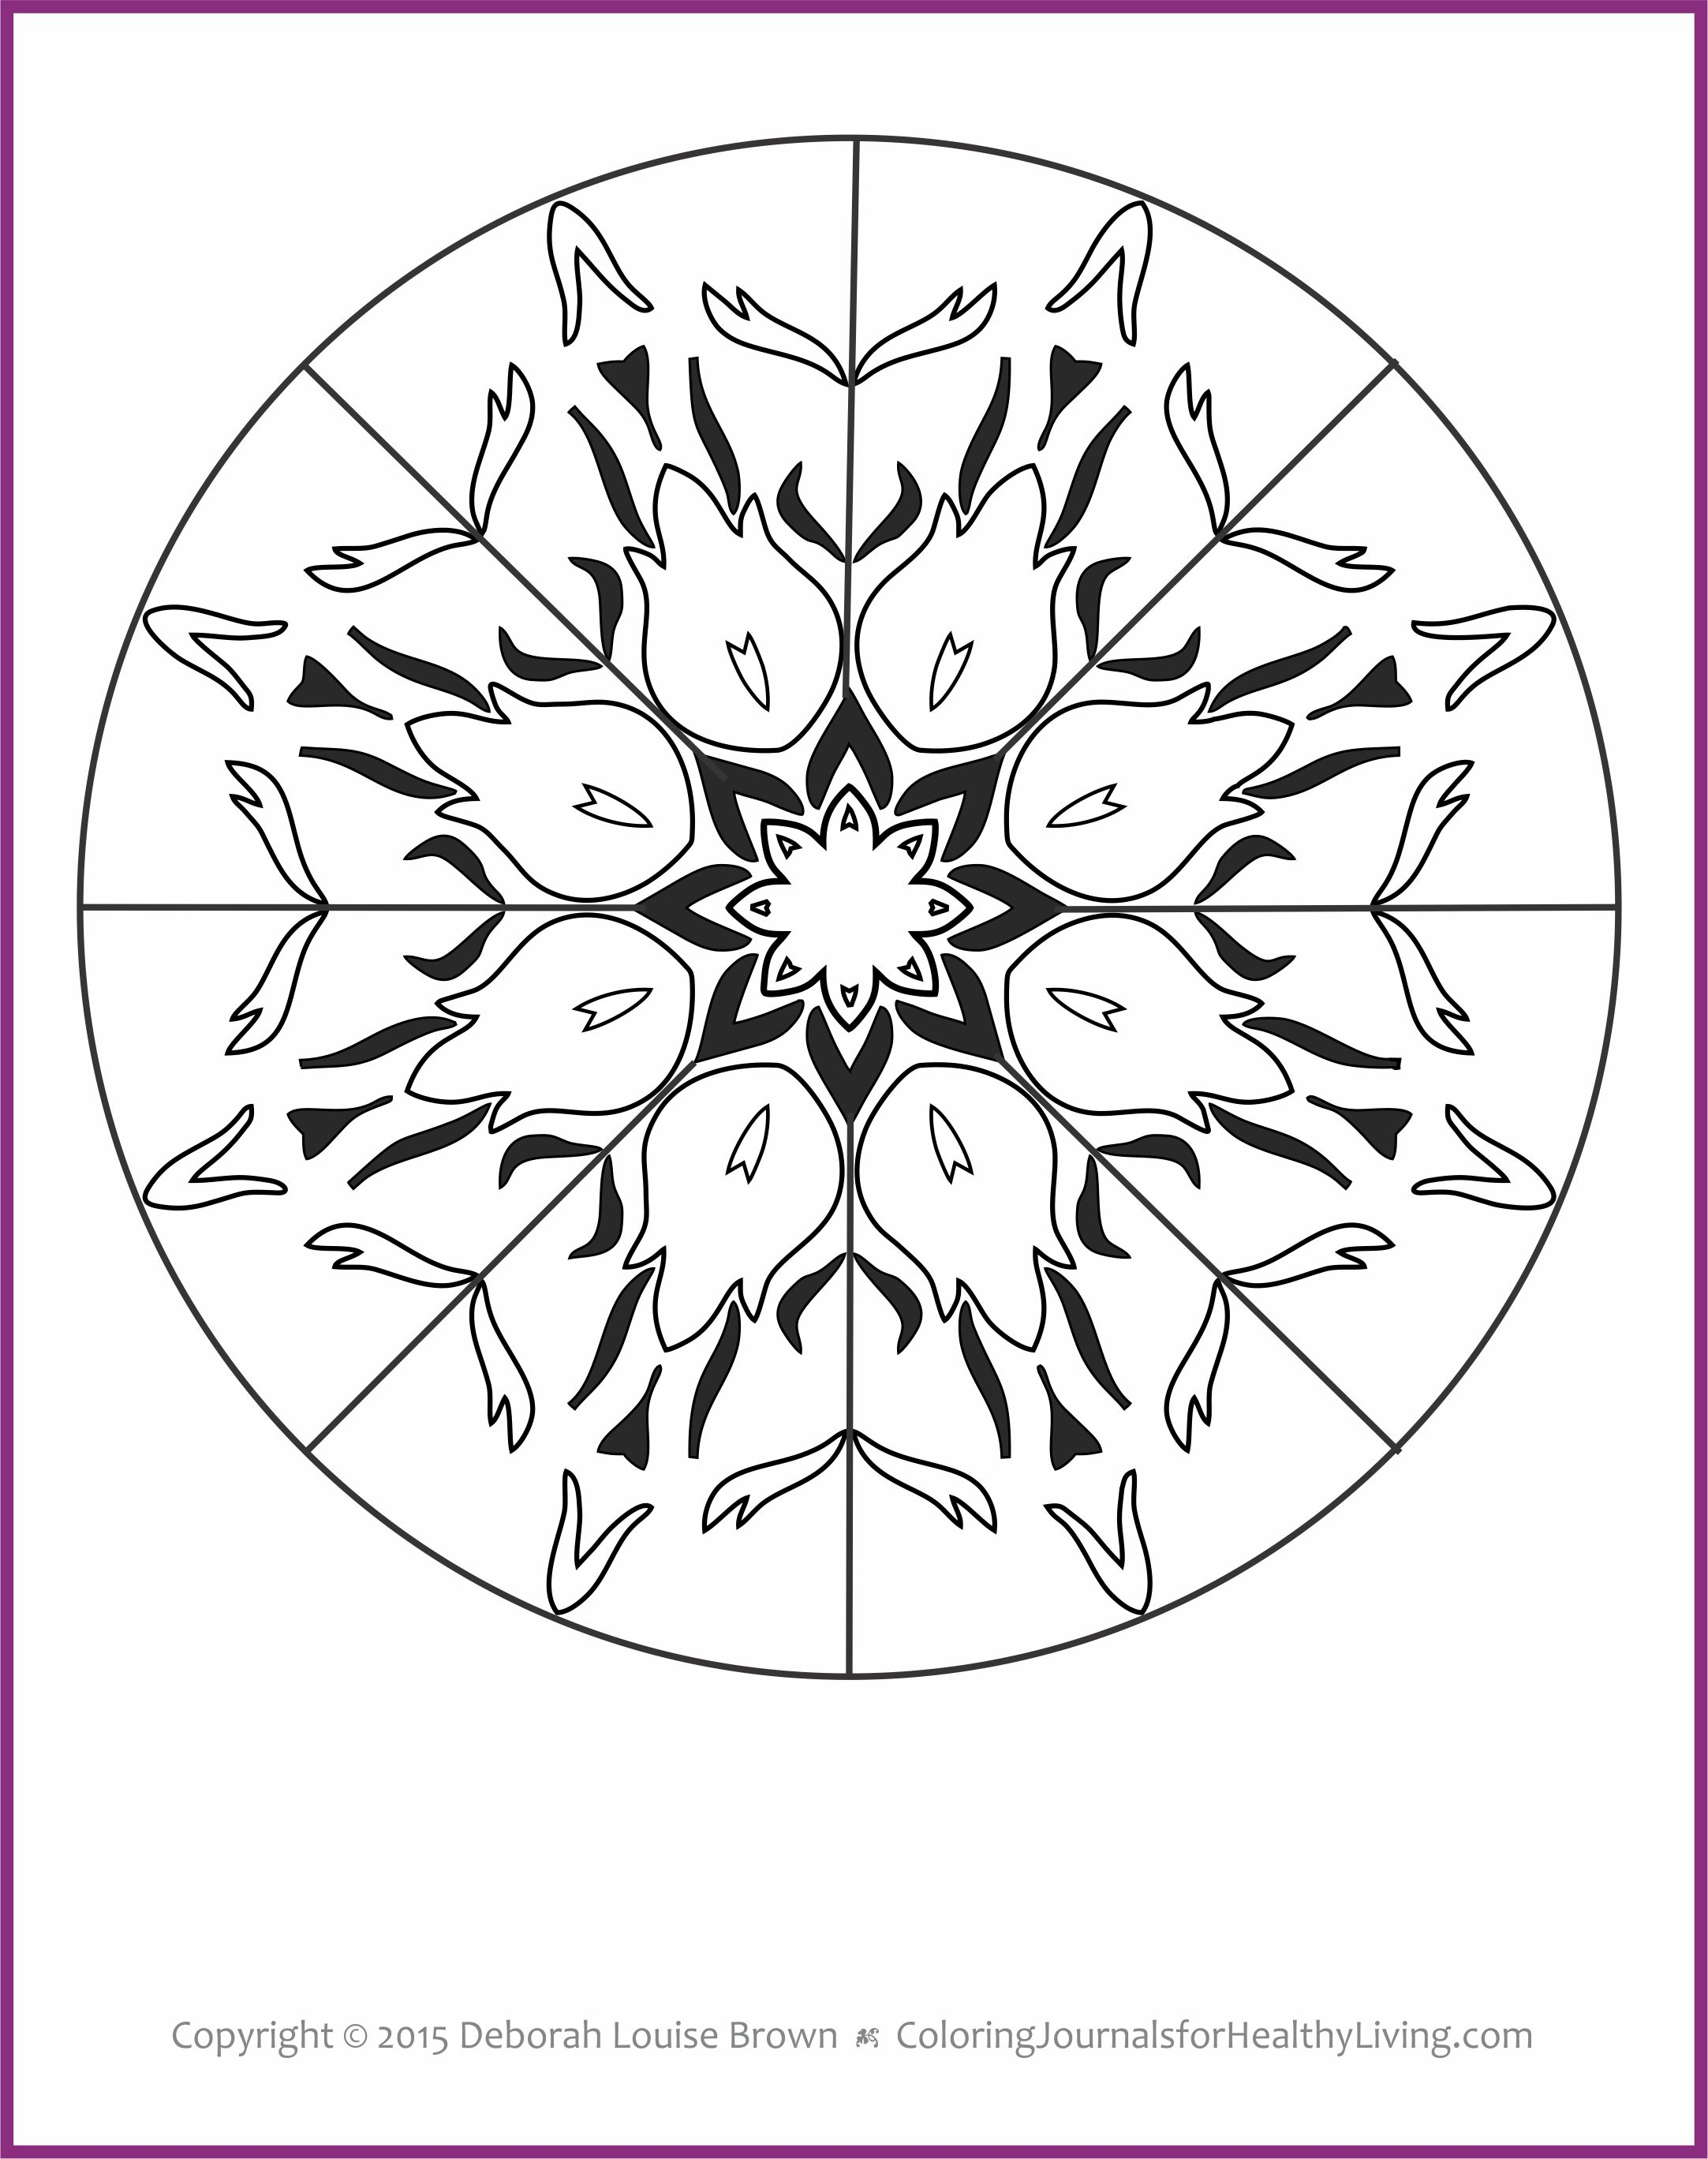 live healthy coloring pages - photo#26